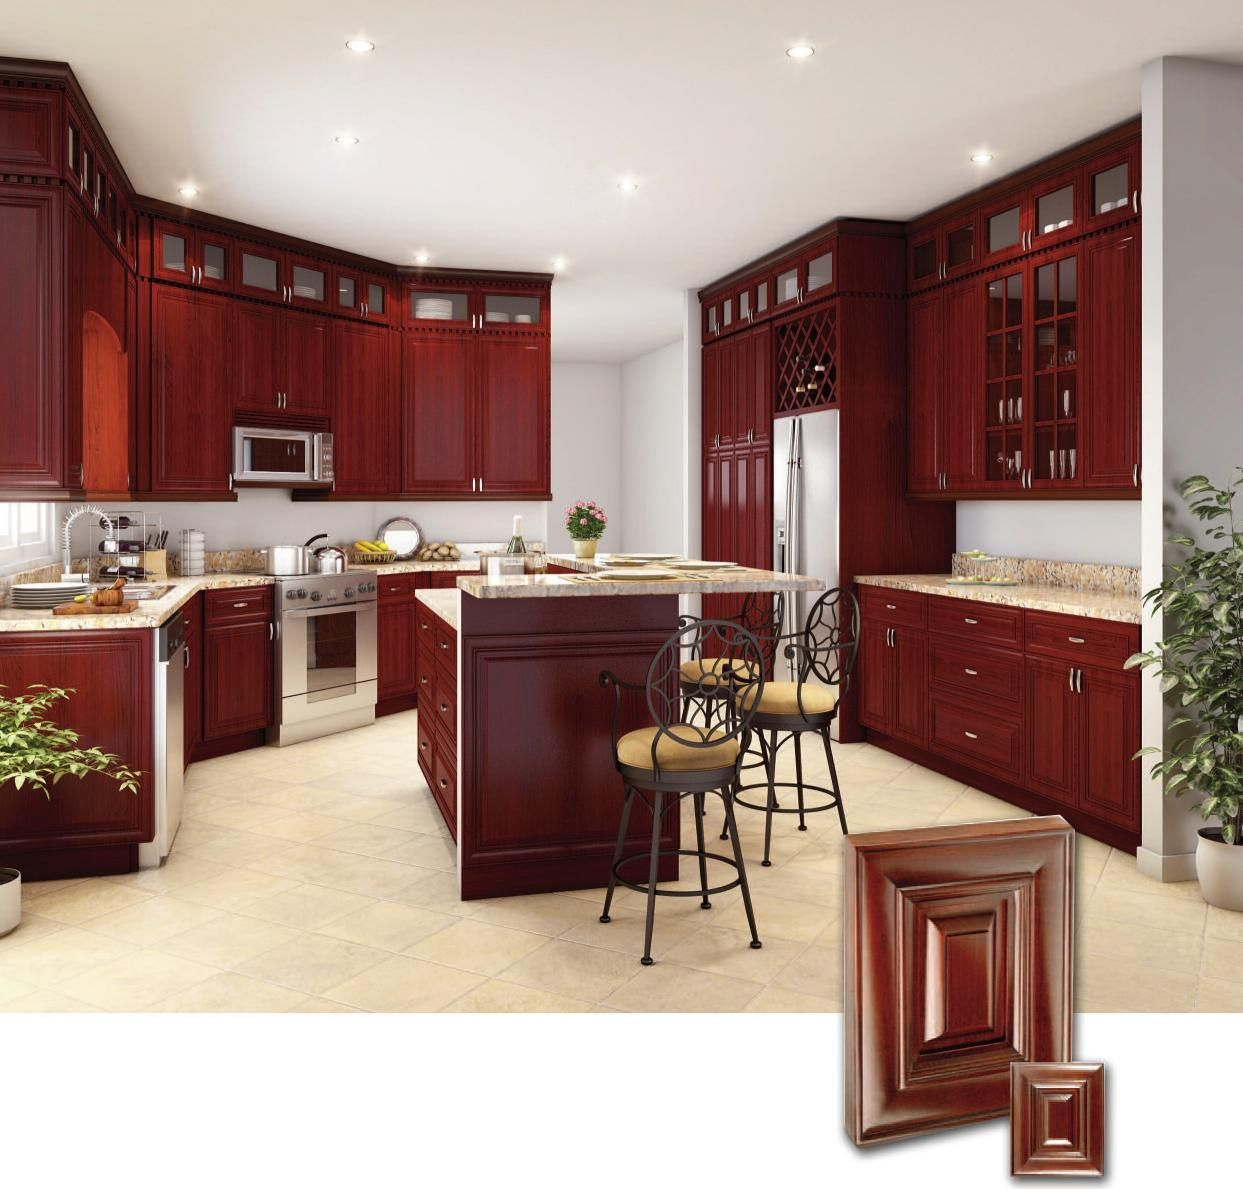 cherry cabinets wallpaper kitchen design ideas cherry wood cabinets hd kitchen paint colors pinterest cherry wood